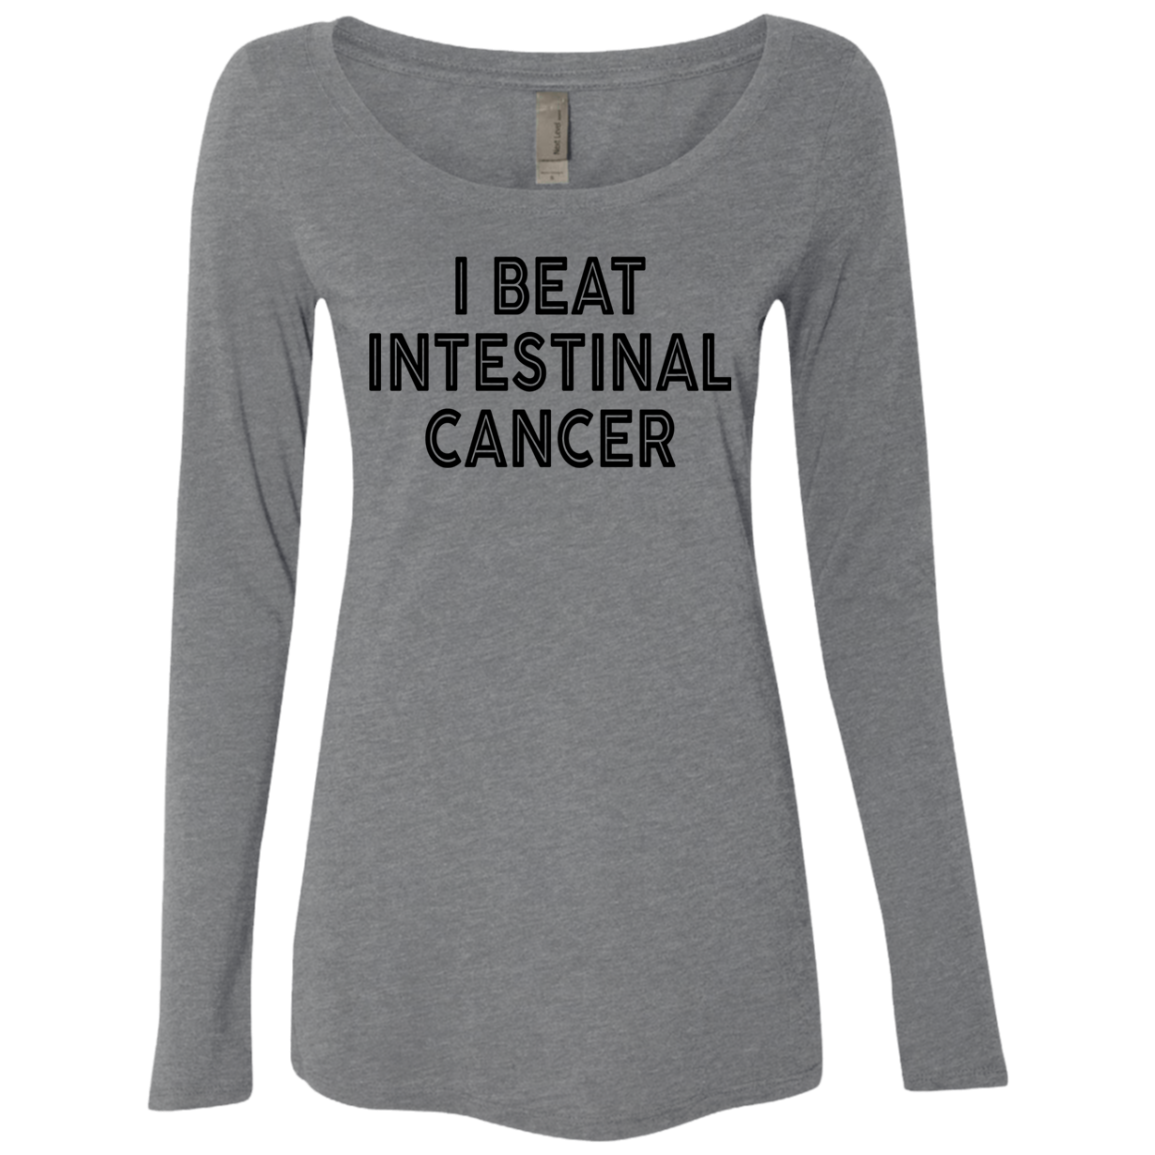 I Beat Intestinal Cancer Women's Long Sleeve Tee